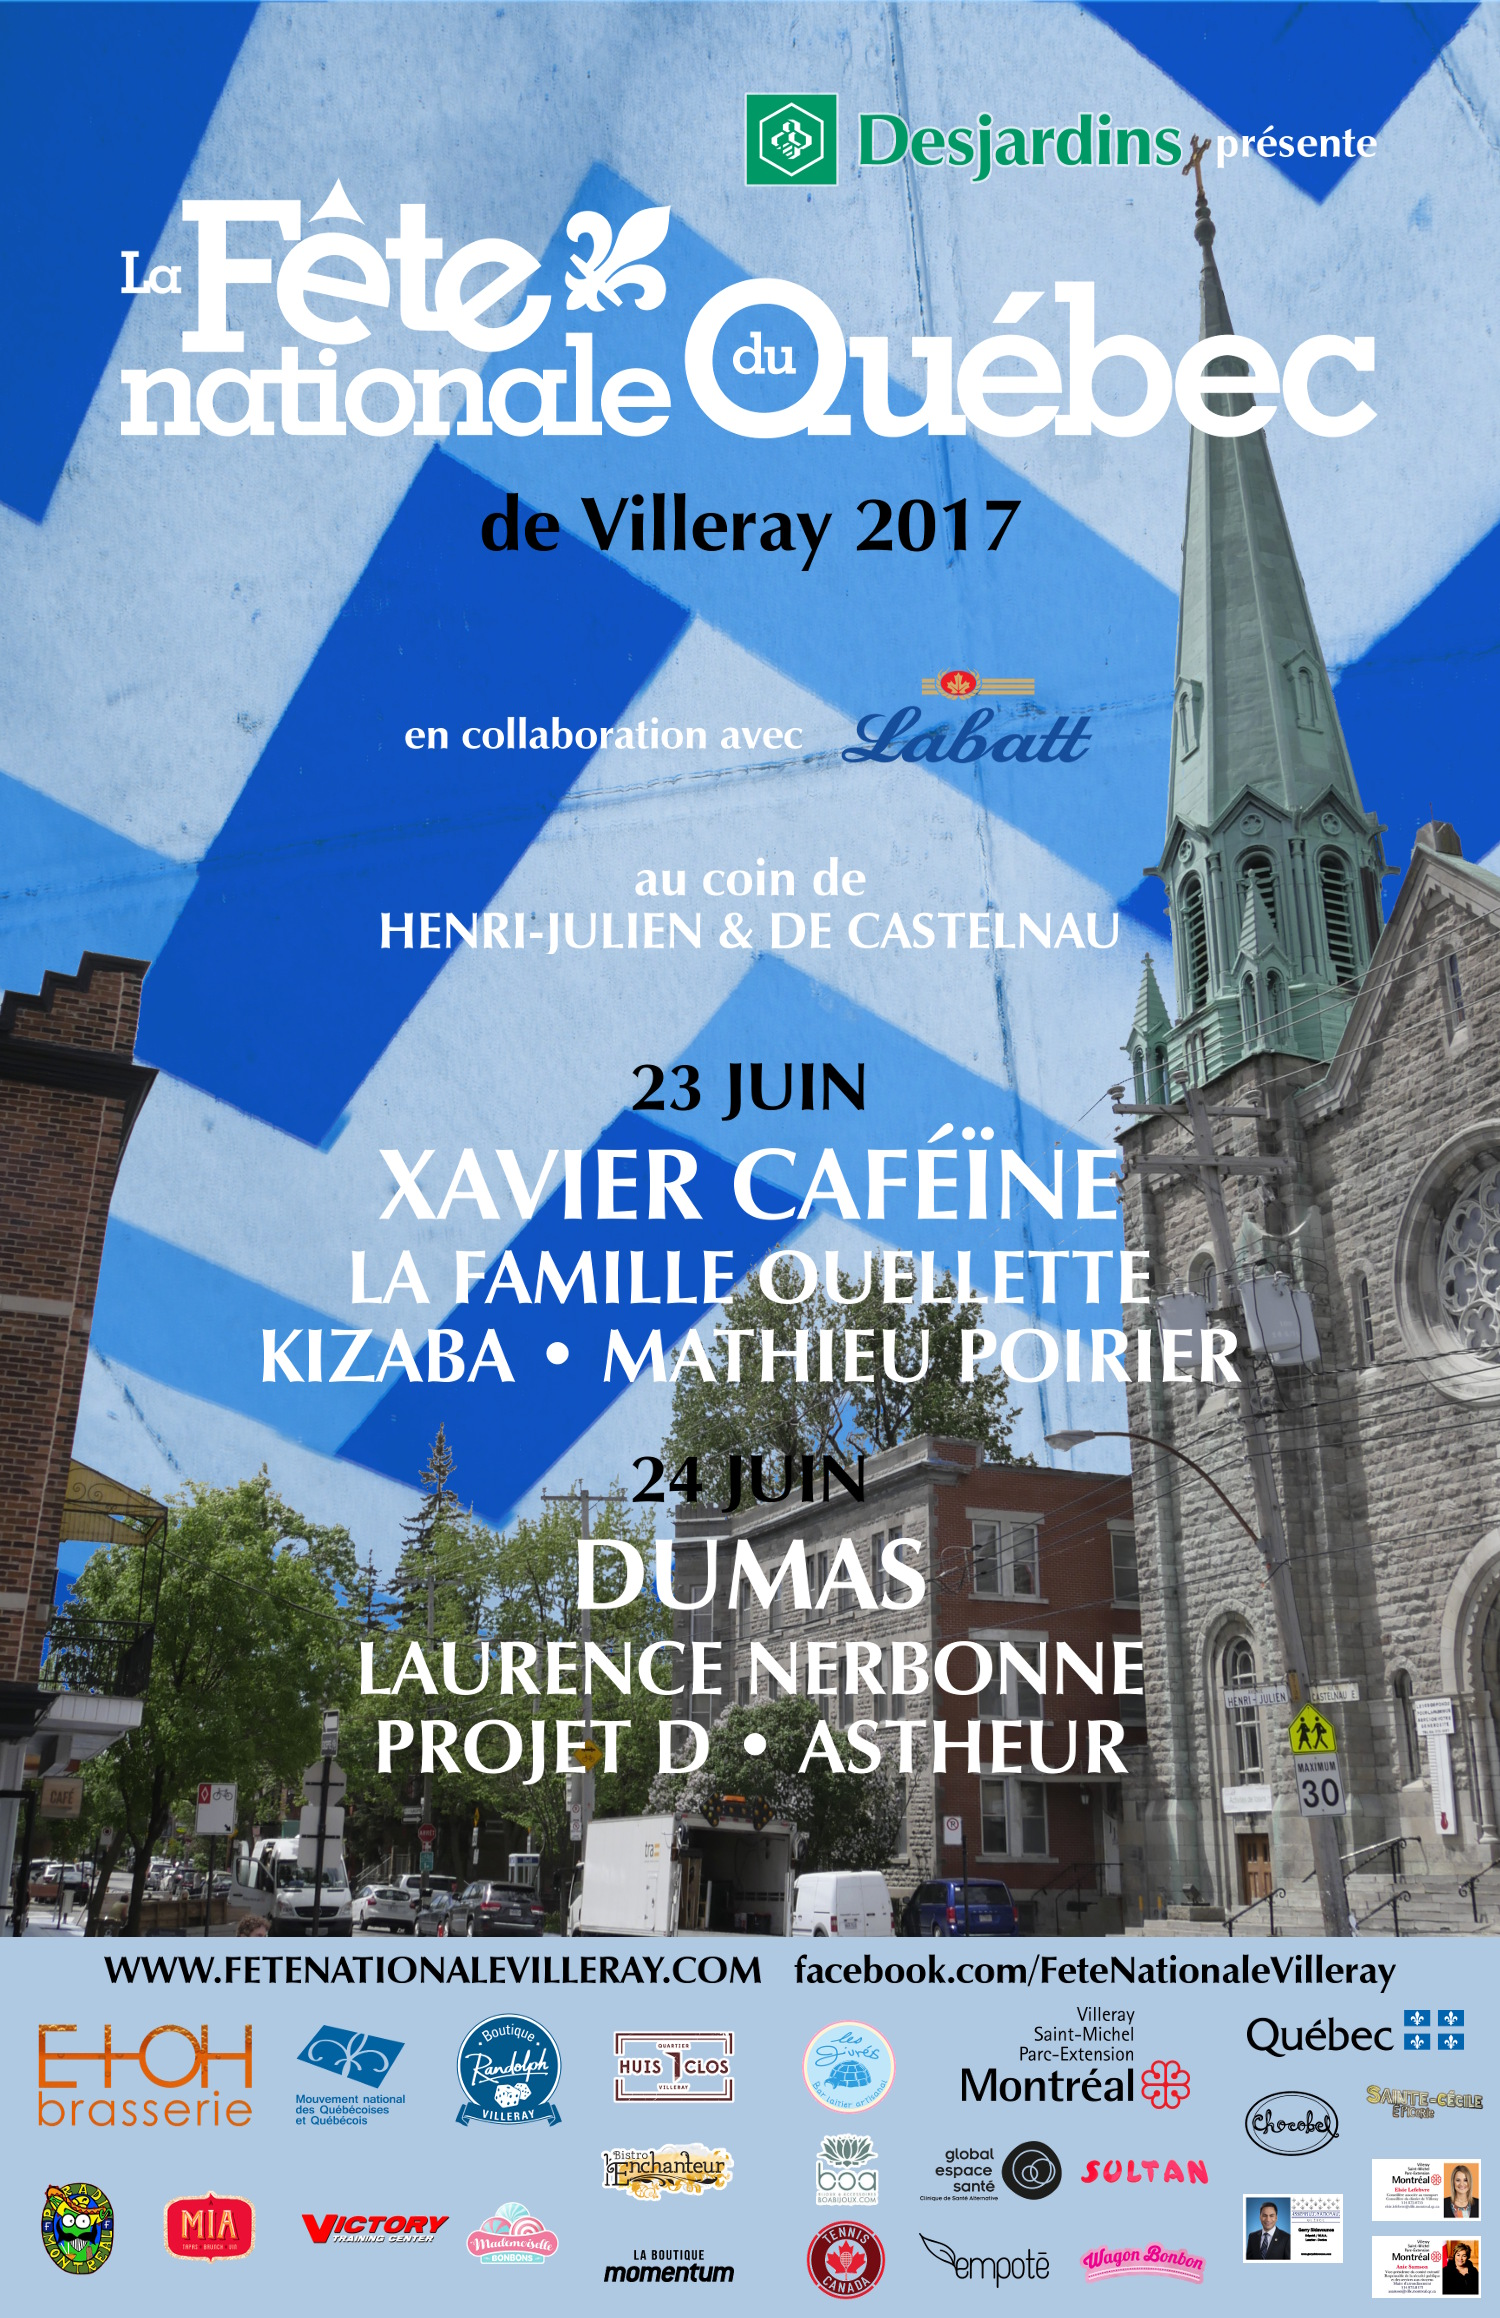 Fête_nationale_Villeray_2017.jpg